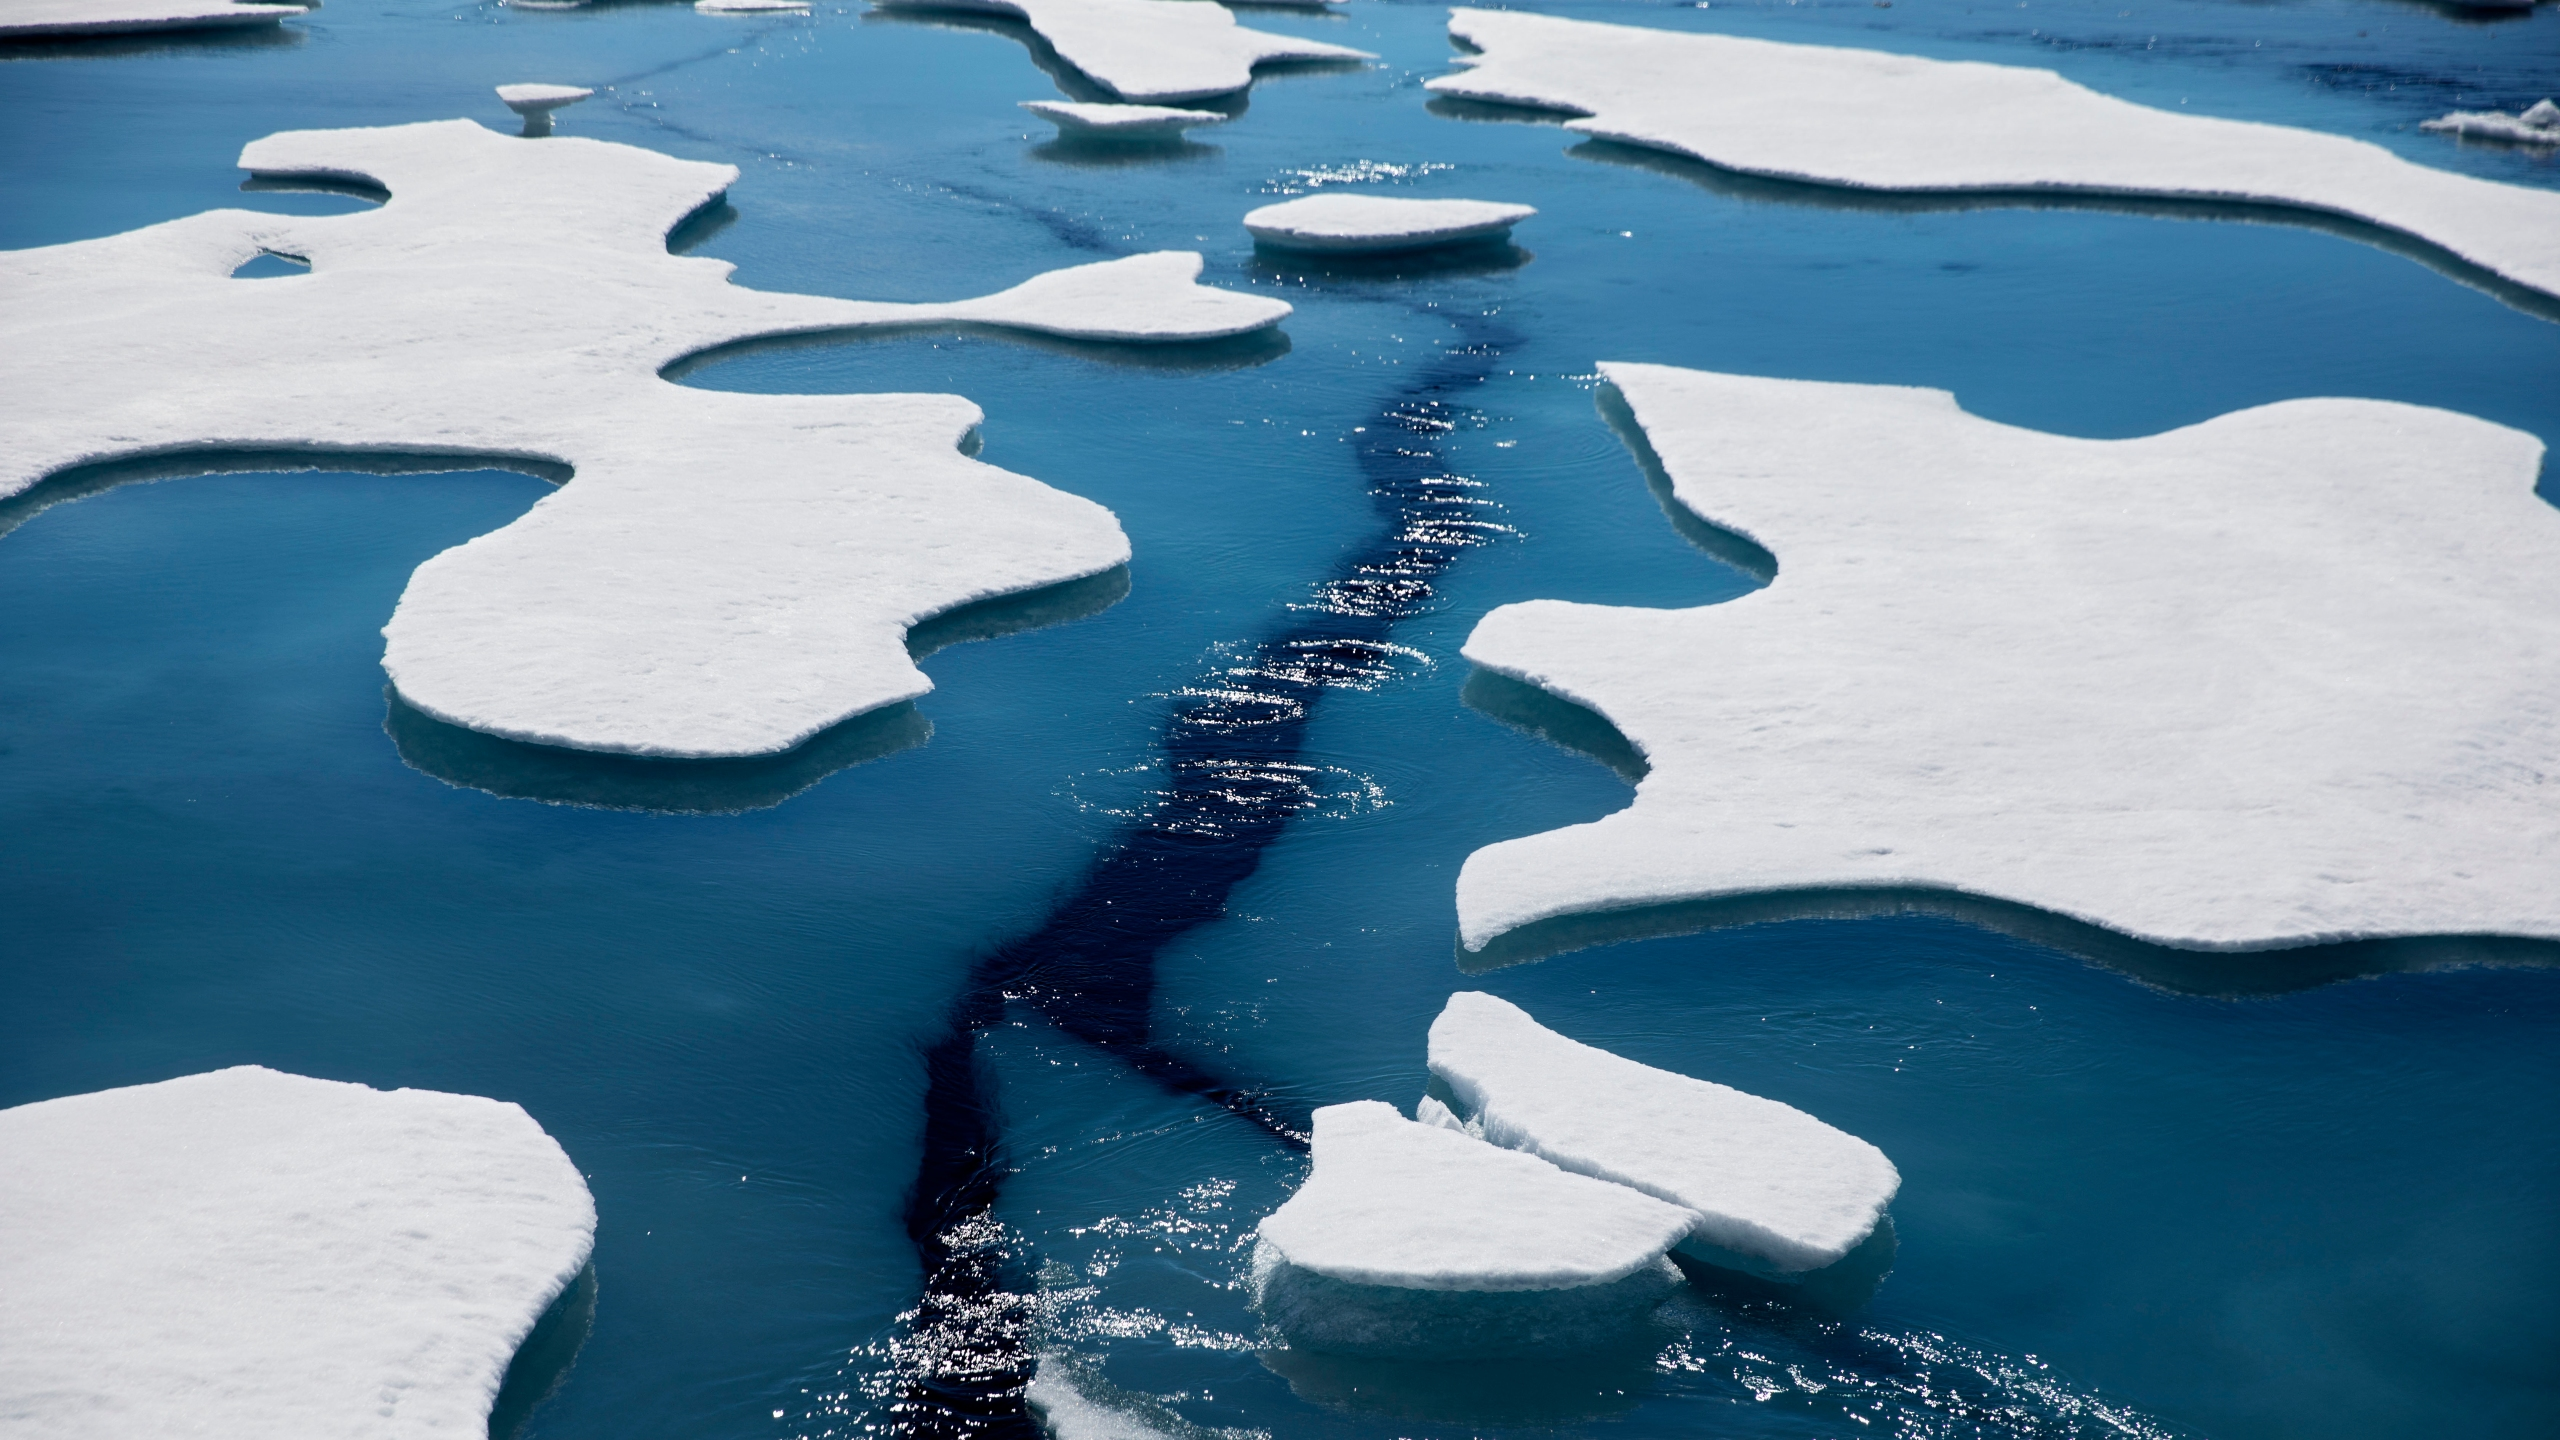 Sea ice breaks apart as the Finnish icebreaker MSV Nordica traverses the Northwest Passage through the Victoria Strait in the Canadian Arctic Archipelago in a Friday, July 21, 2017 file photo. (David Goldman/Associated Press)